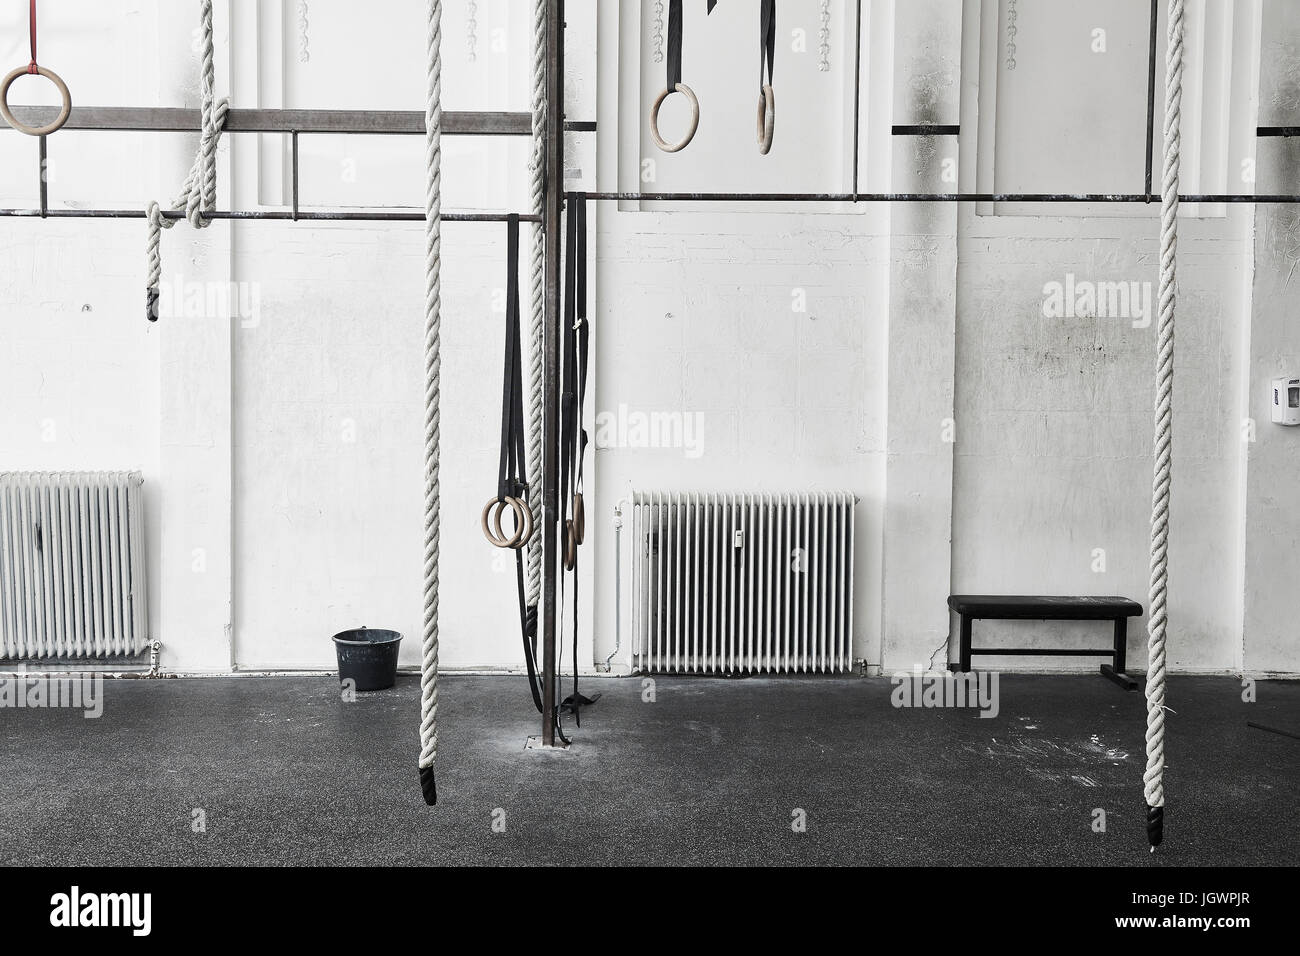 Ropes and gymnastic rings in cross training gym - Stock Image